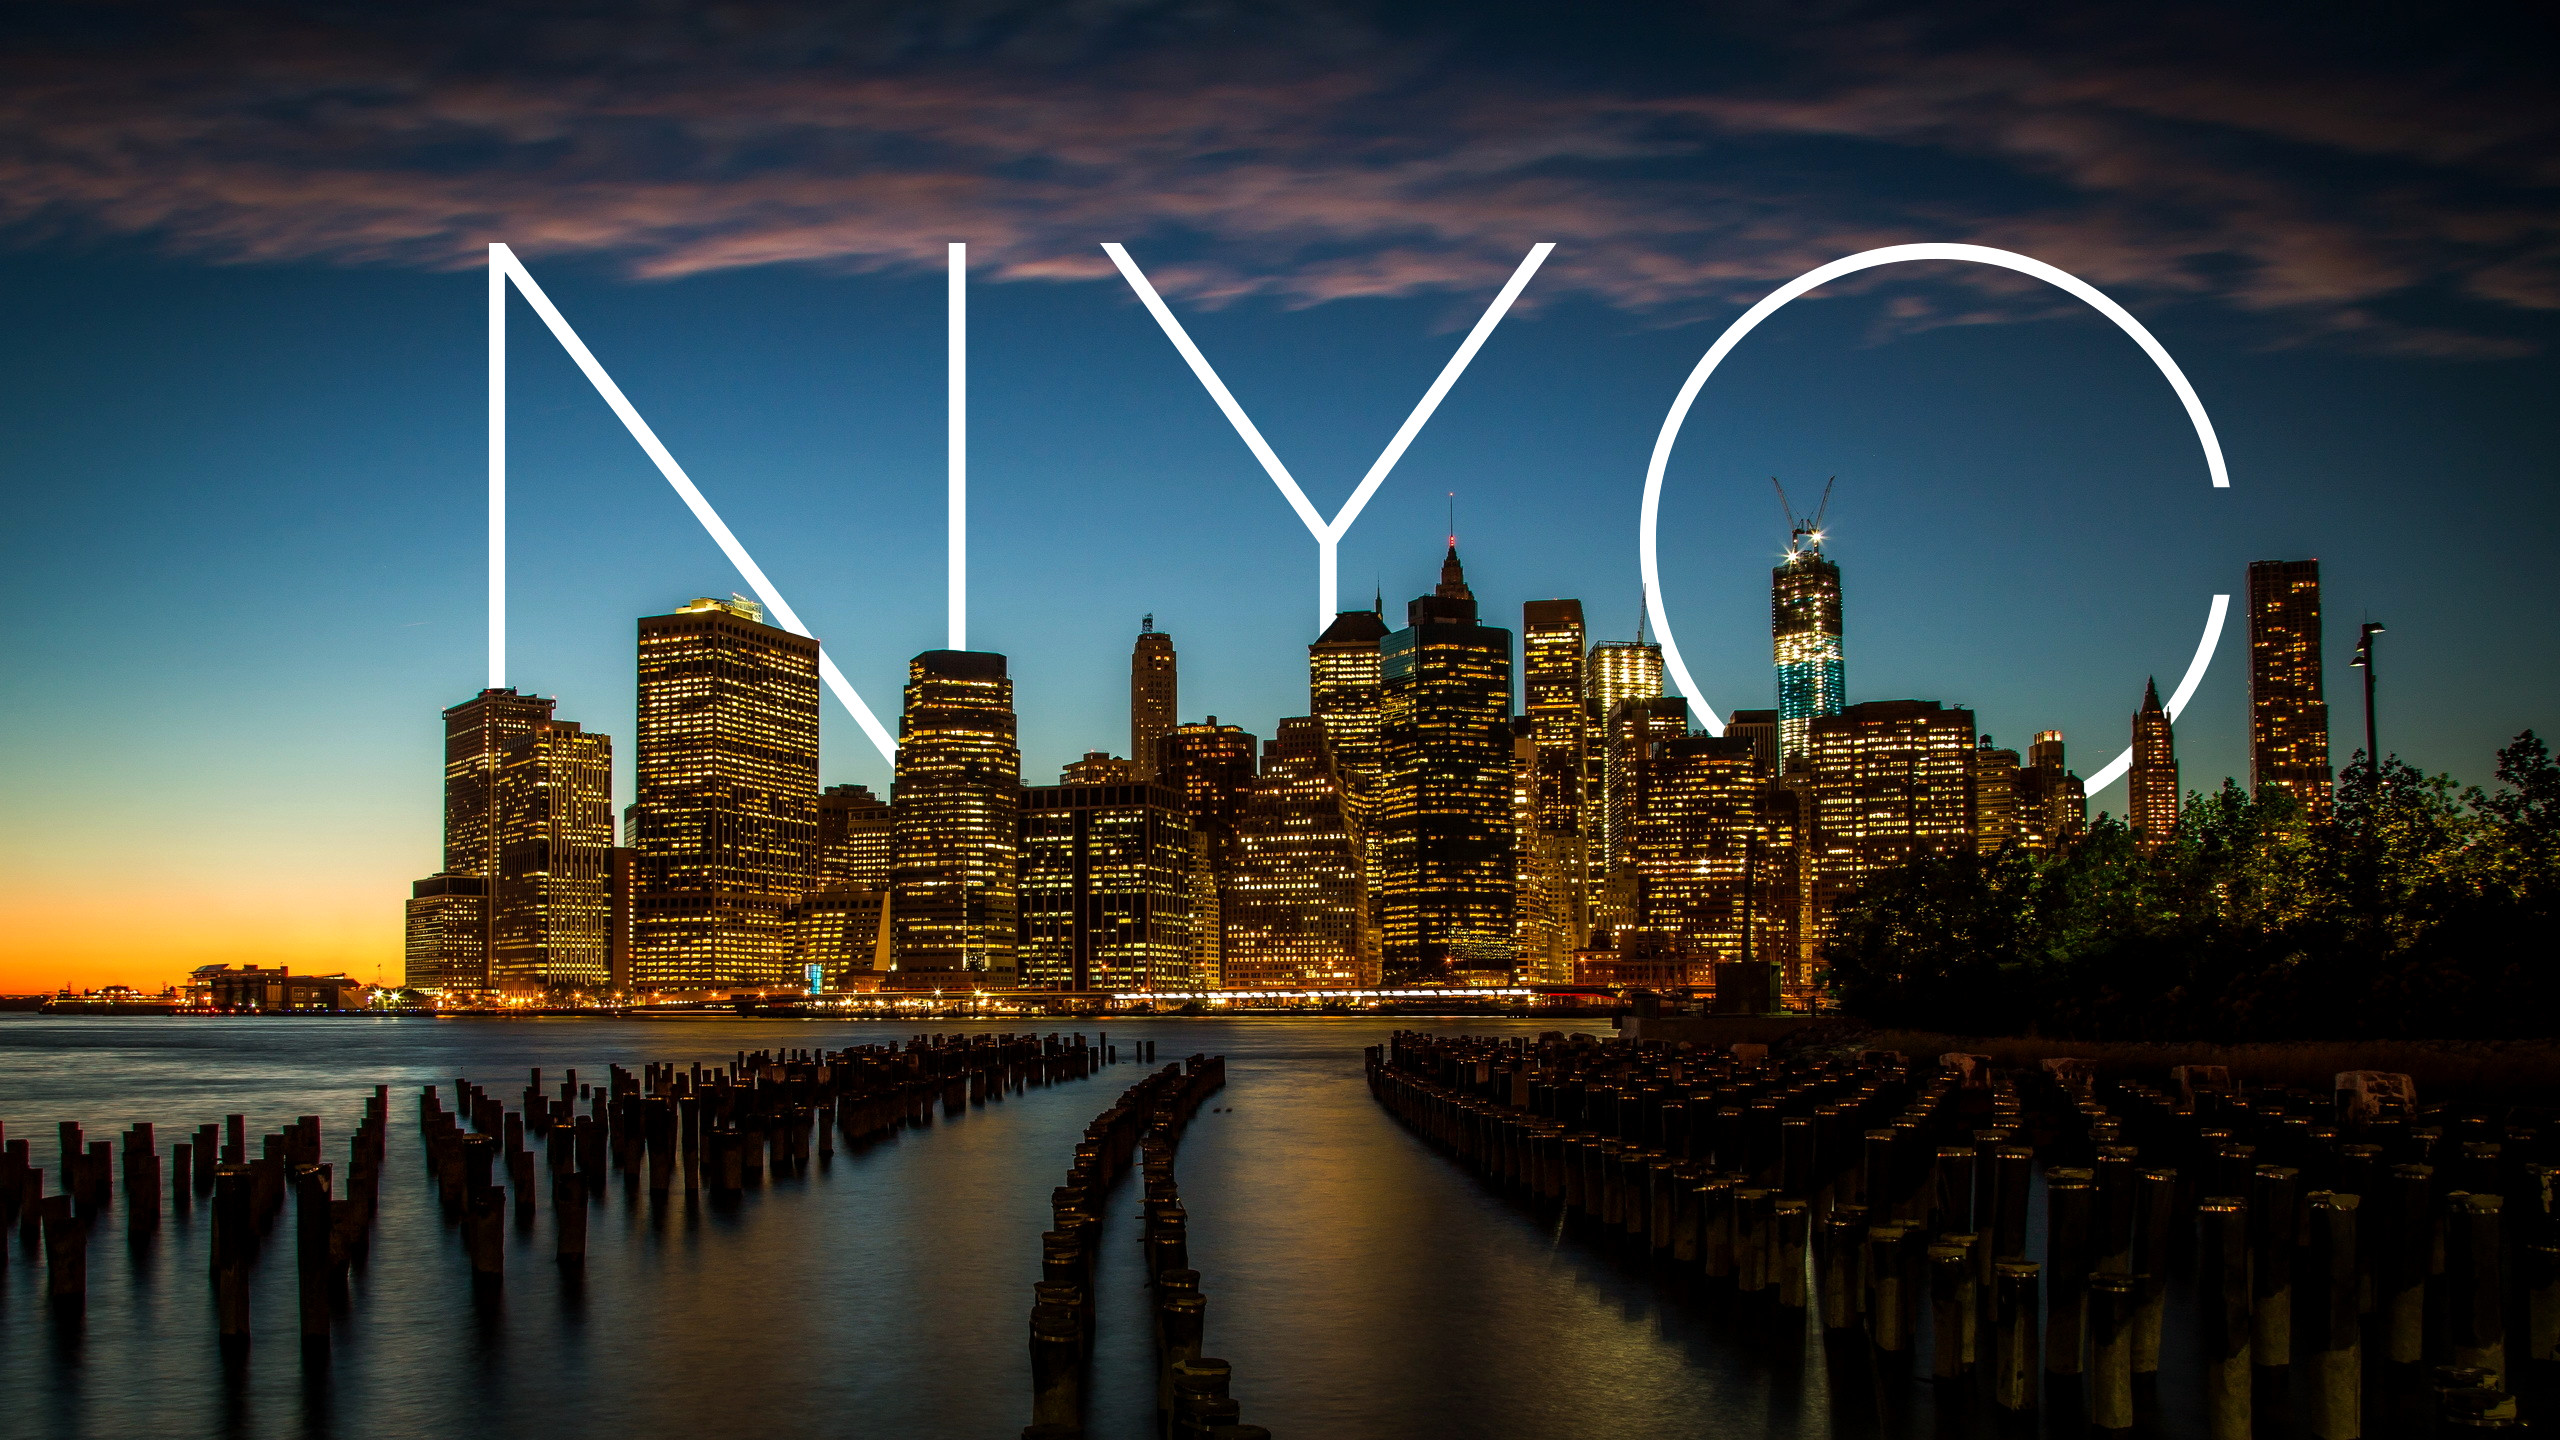 New york city 4k wallpaper 38 images 2560x1440 new york city hd wallpapers backgrounds voltagebd Image collections